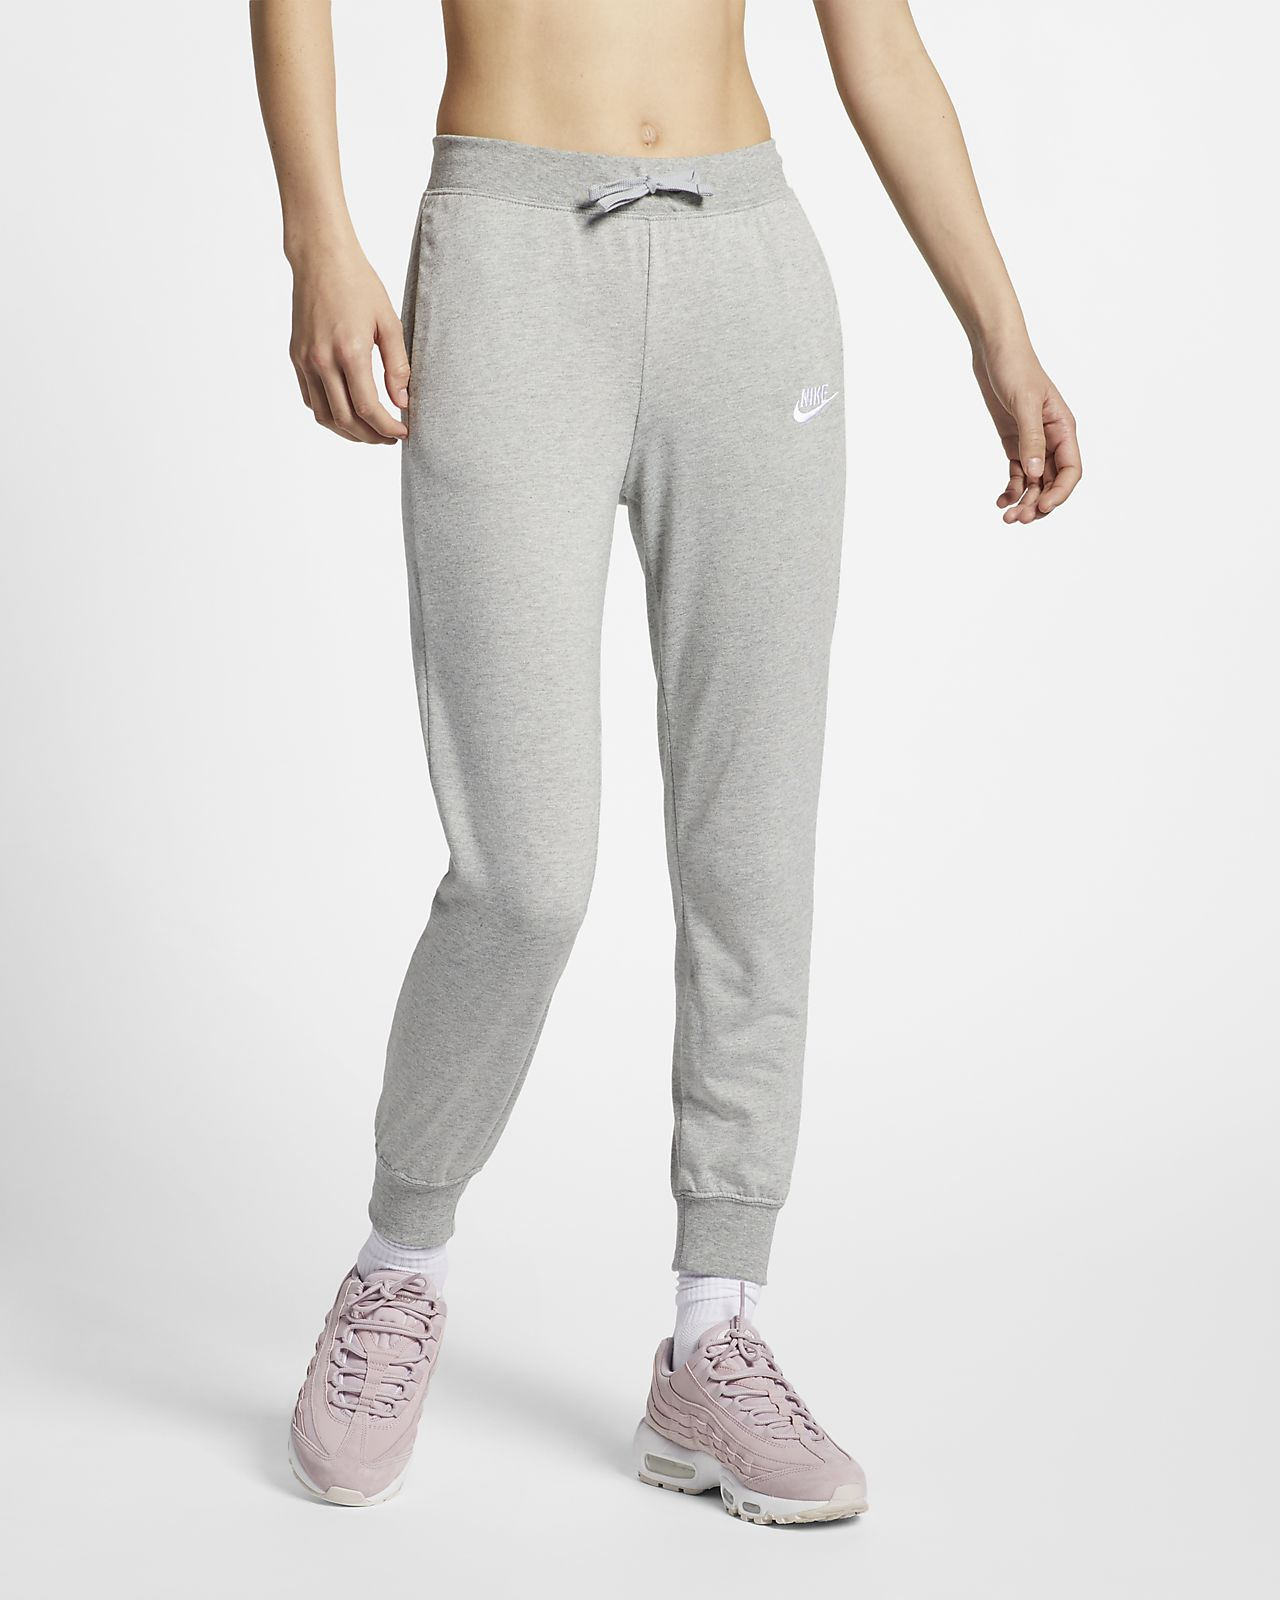 exceptional range of styles newest selection hot-selling real Nike Sportswear Women's Jersey Pants